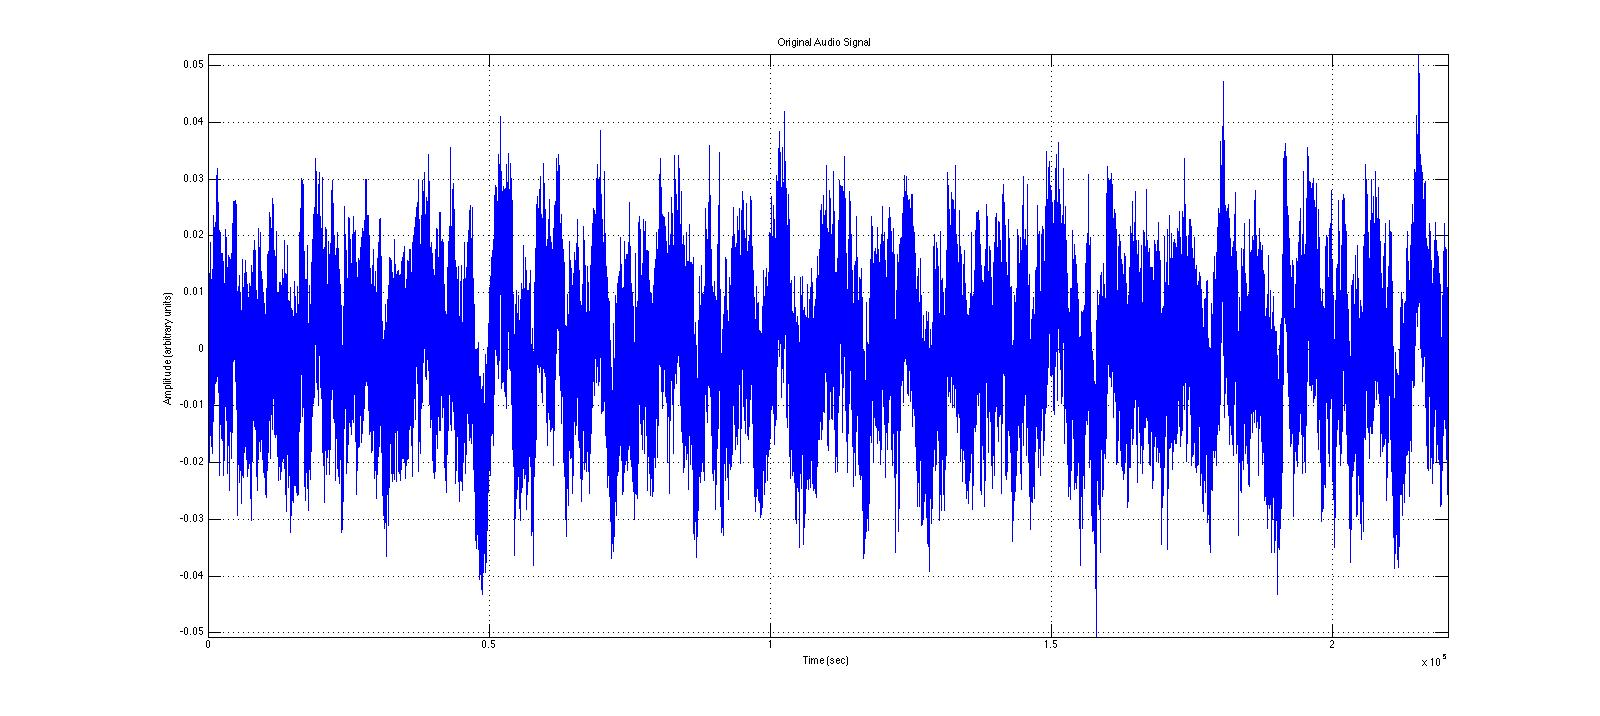 audio signal processing thesis View audio signal processing research papers on academiaedu for free.